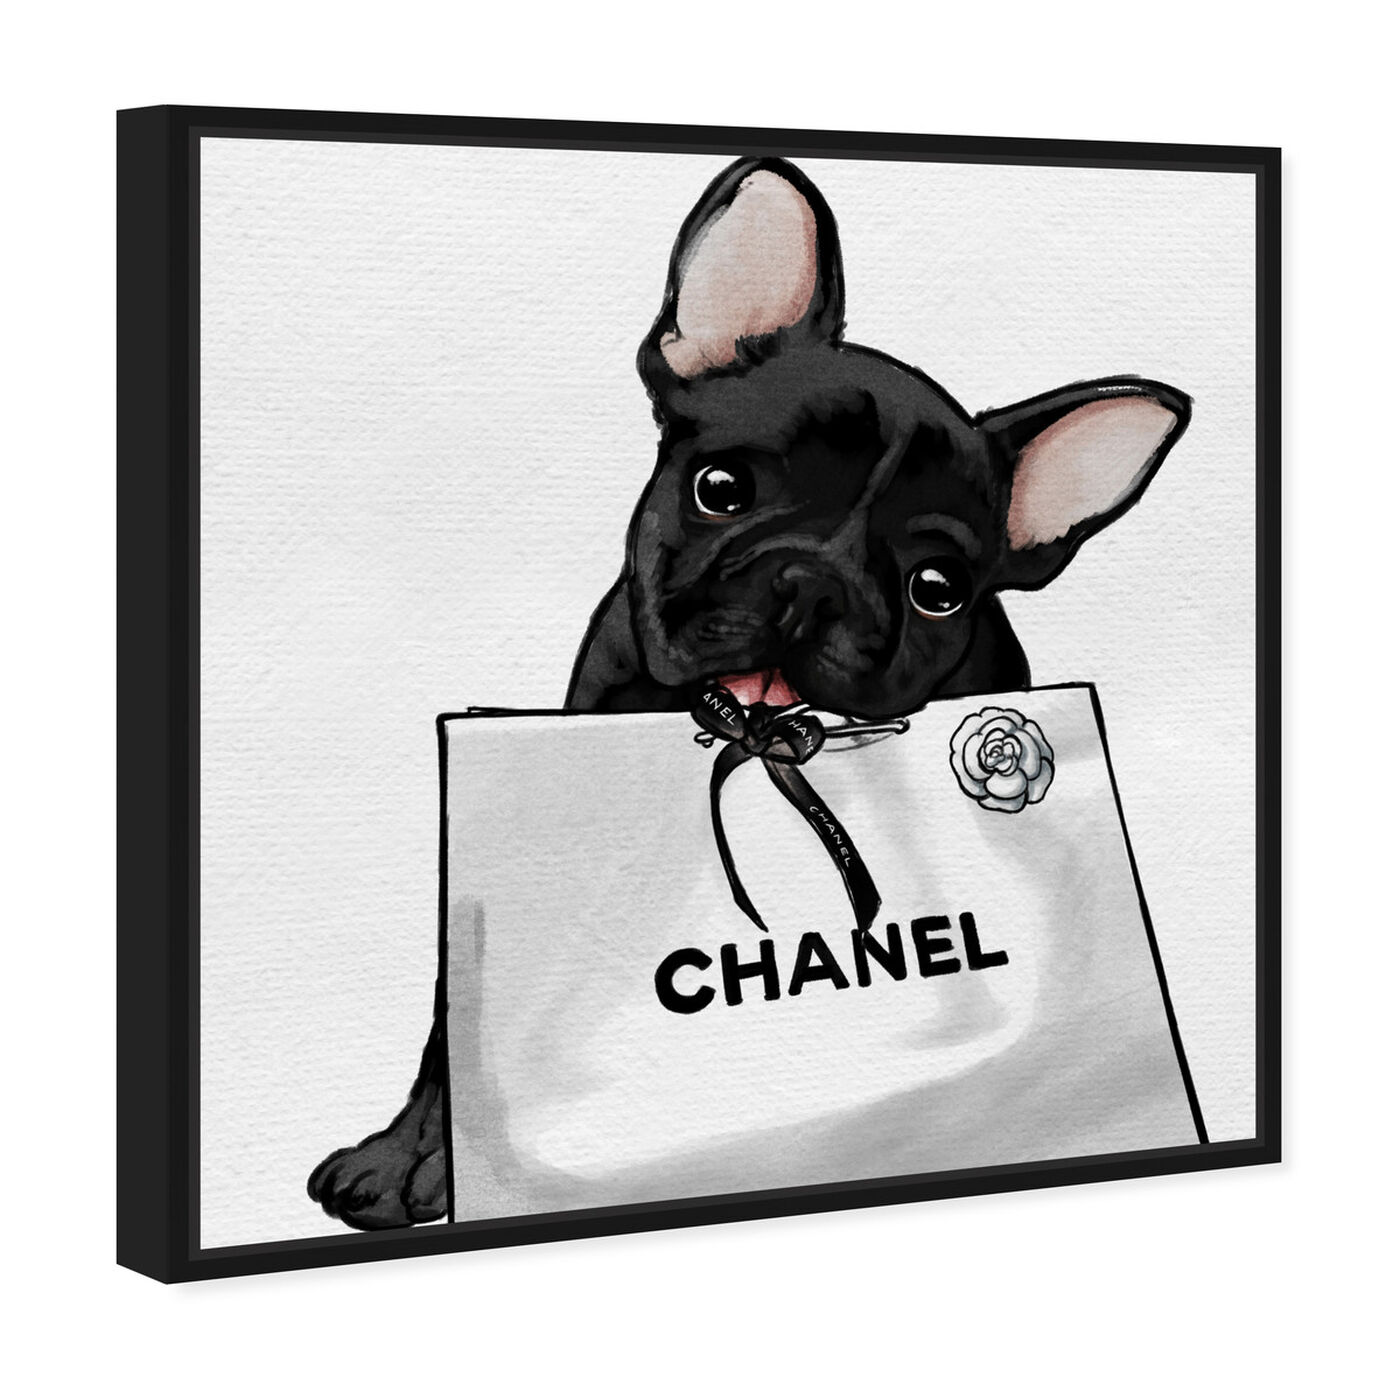 Angled view of Frenchie Glam White Bag featuring animals and dogs and puppies art.